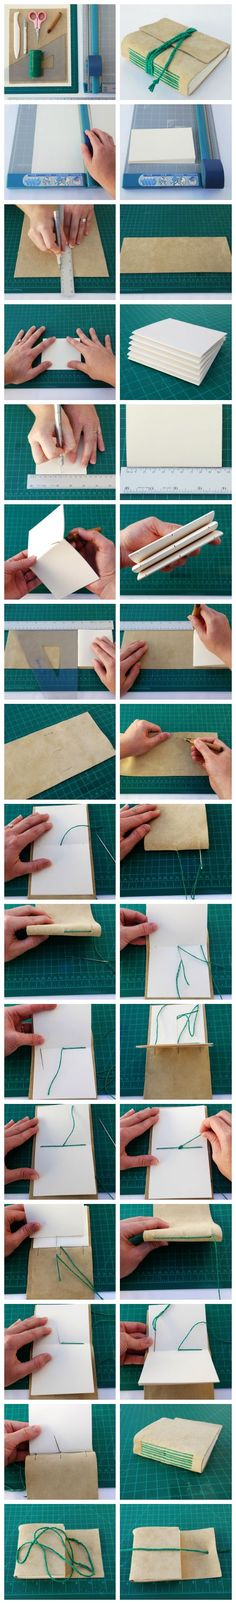 Learn How To Make A Long Stitch Bound Journal Freetutorial Bookbinding Papercraft 6 Handmade Journals, Handmade Books, Handmade Diary, Handmade Rugs, Handmade Crafts, Book Crafts, Paper Crafts, Diy Crafts, Diy Paper